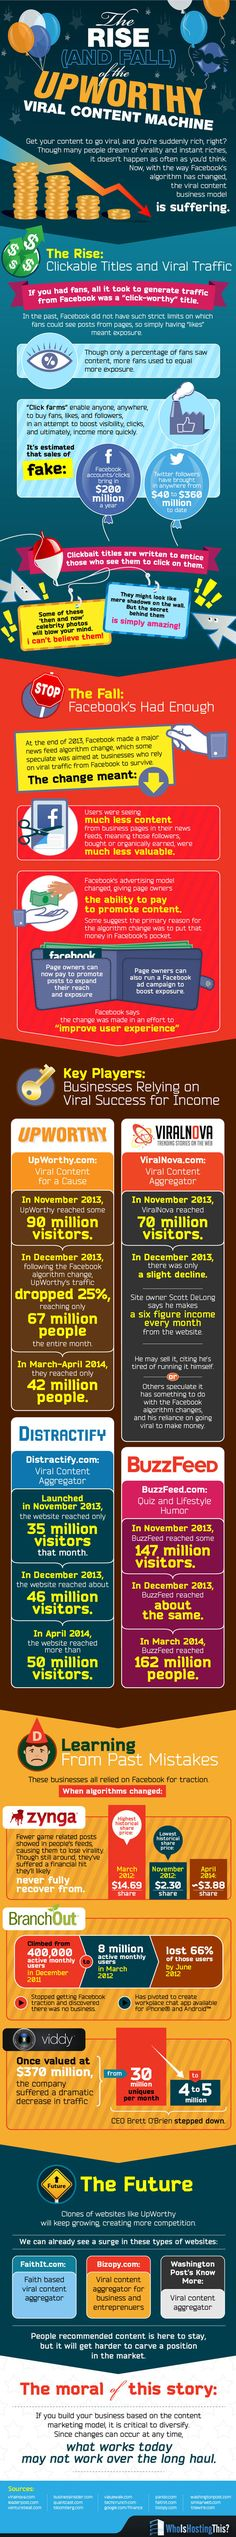 The Rise and Fall of the Upworthy Viral Content Machine [Infographic] Marketing Digital, Marketing Viral, Social Media Marketing Agency, Facebook Marketing, Content Marketing, Internet Marketing, Online Marketing, Marketing Plan, Social Media Content